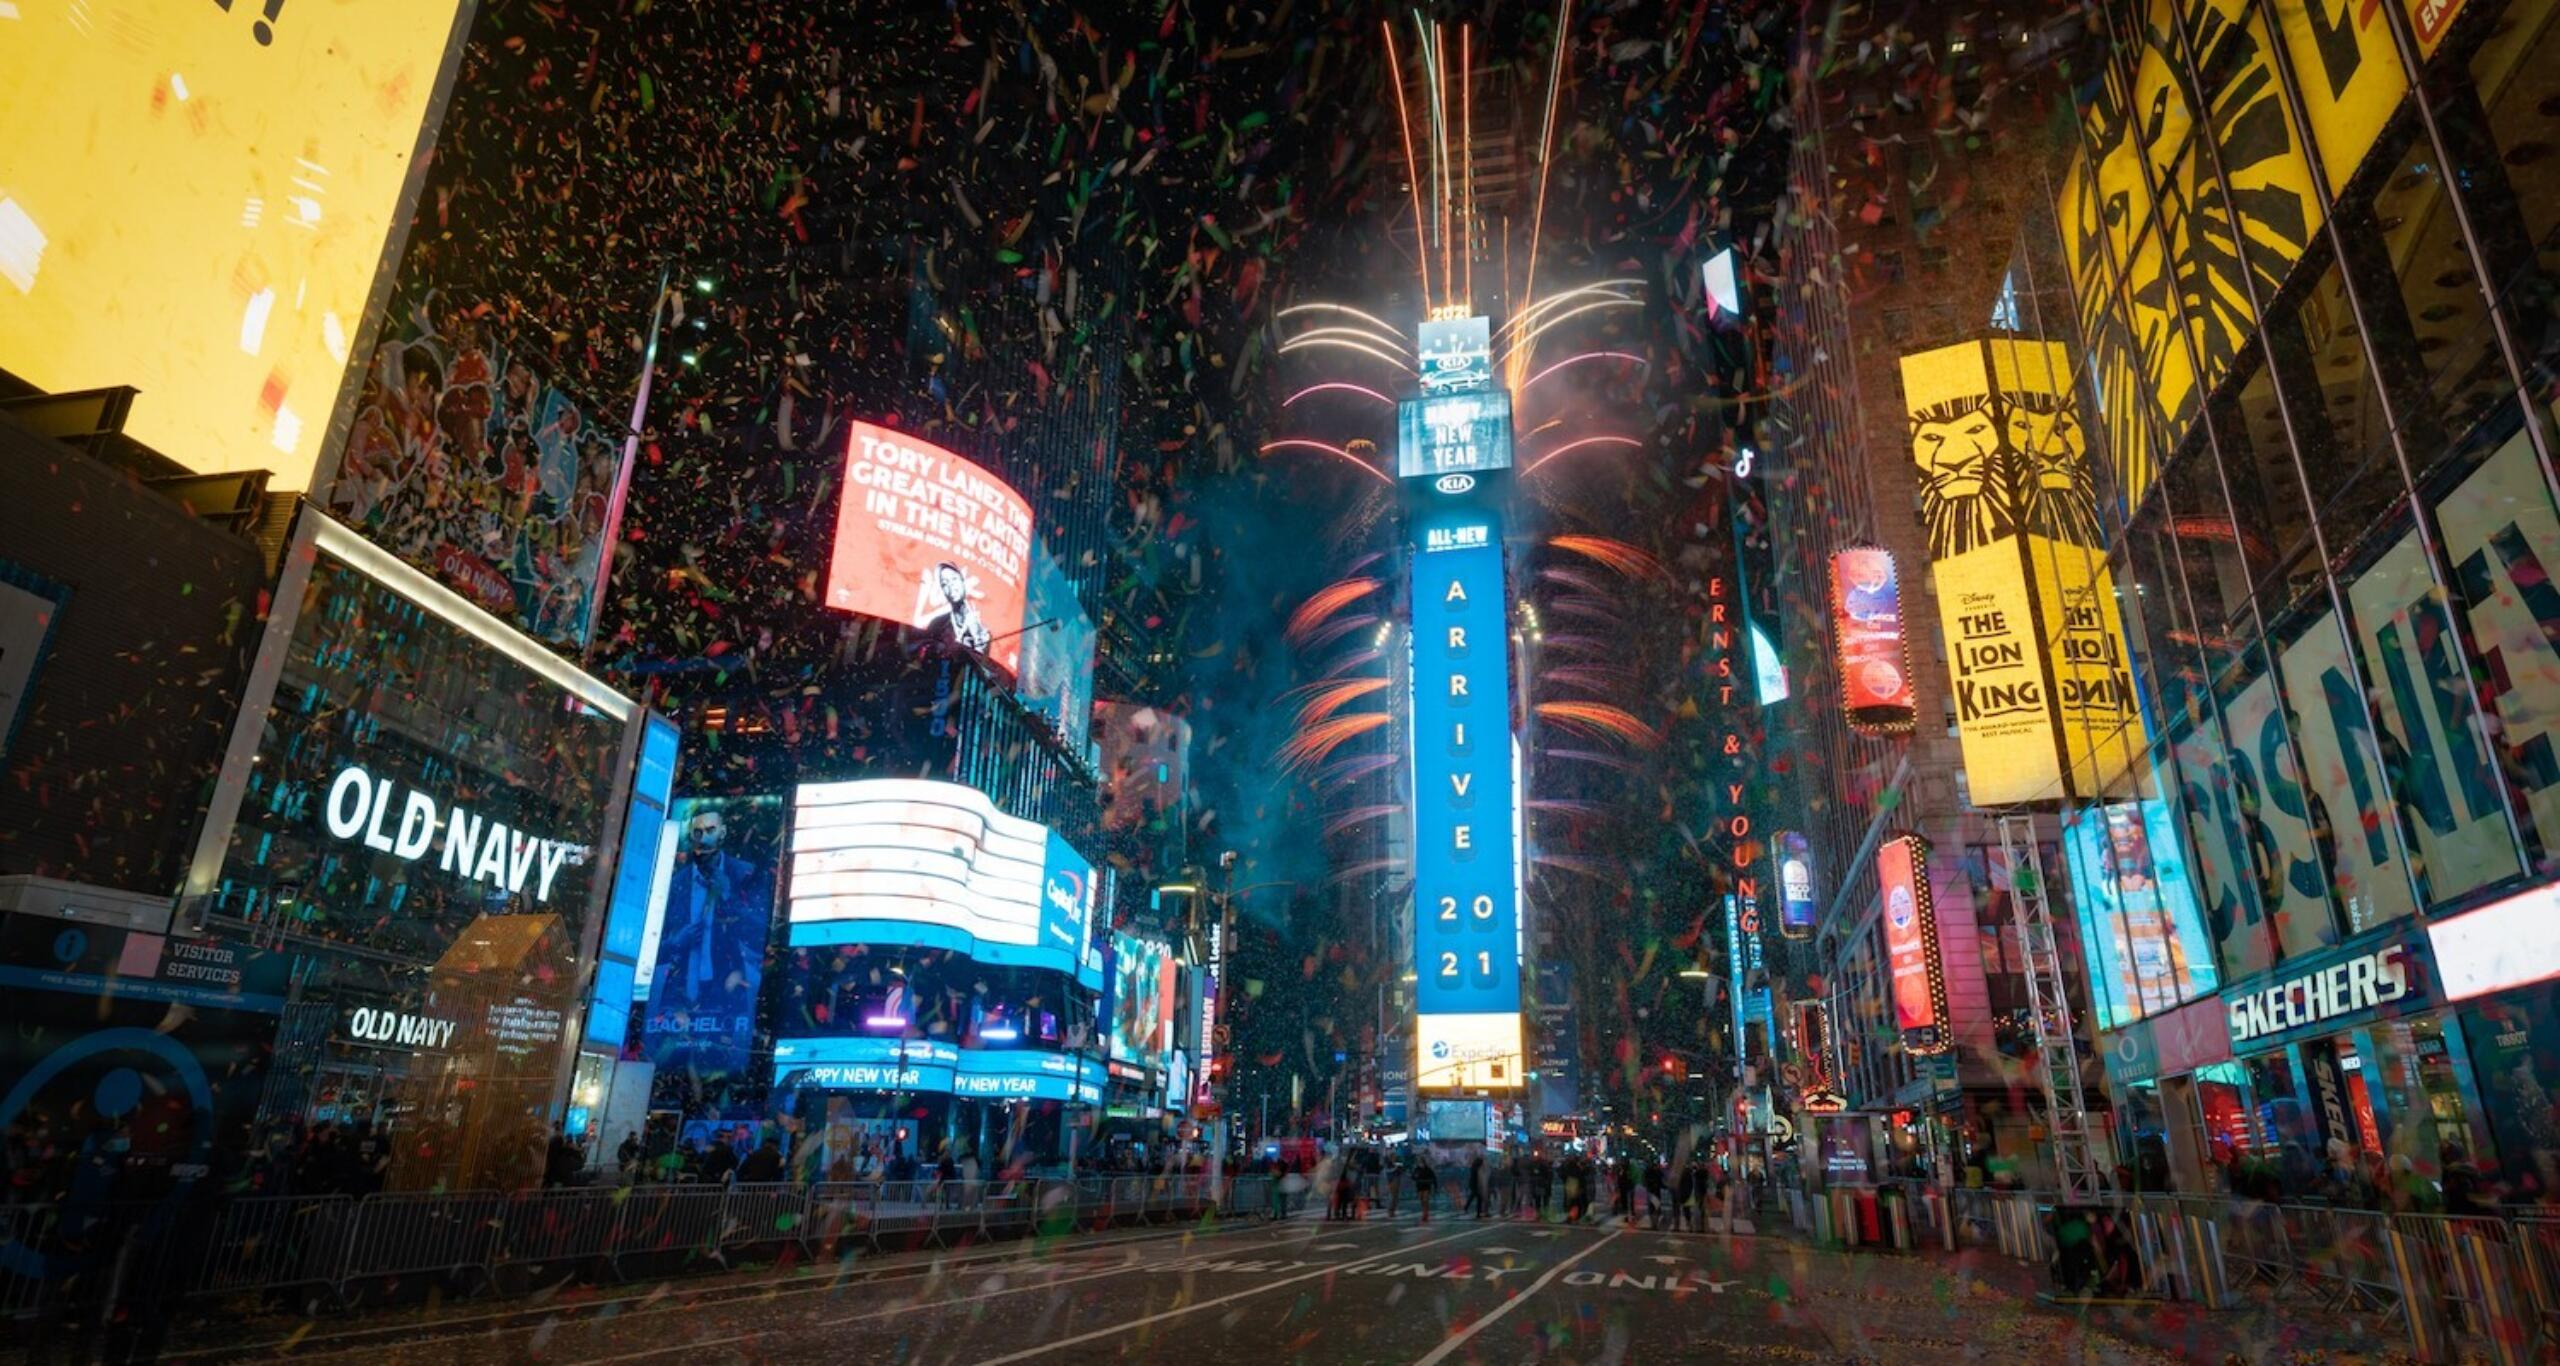 One Times Square on New Year's Eve 2021 with fireworks during the ball drop